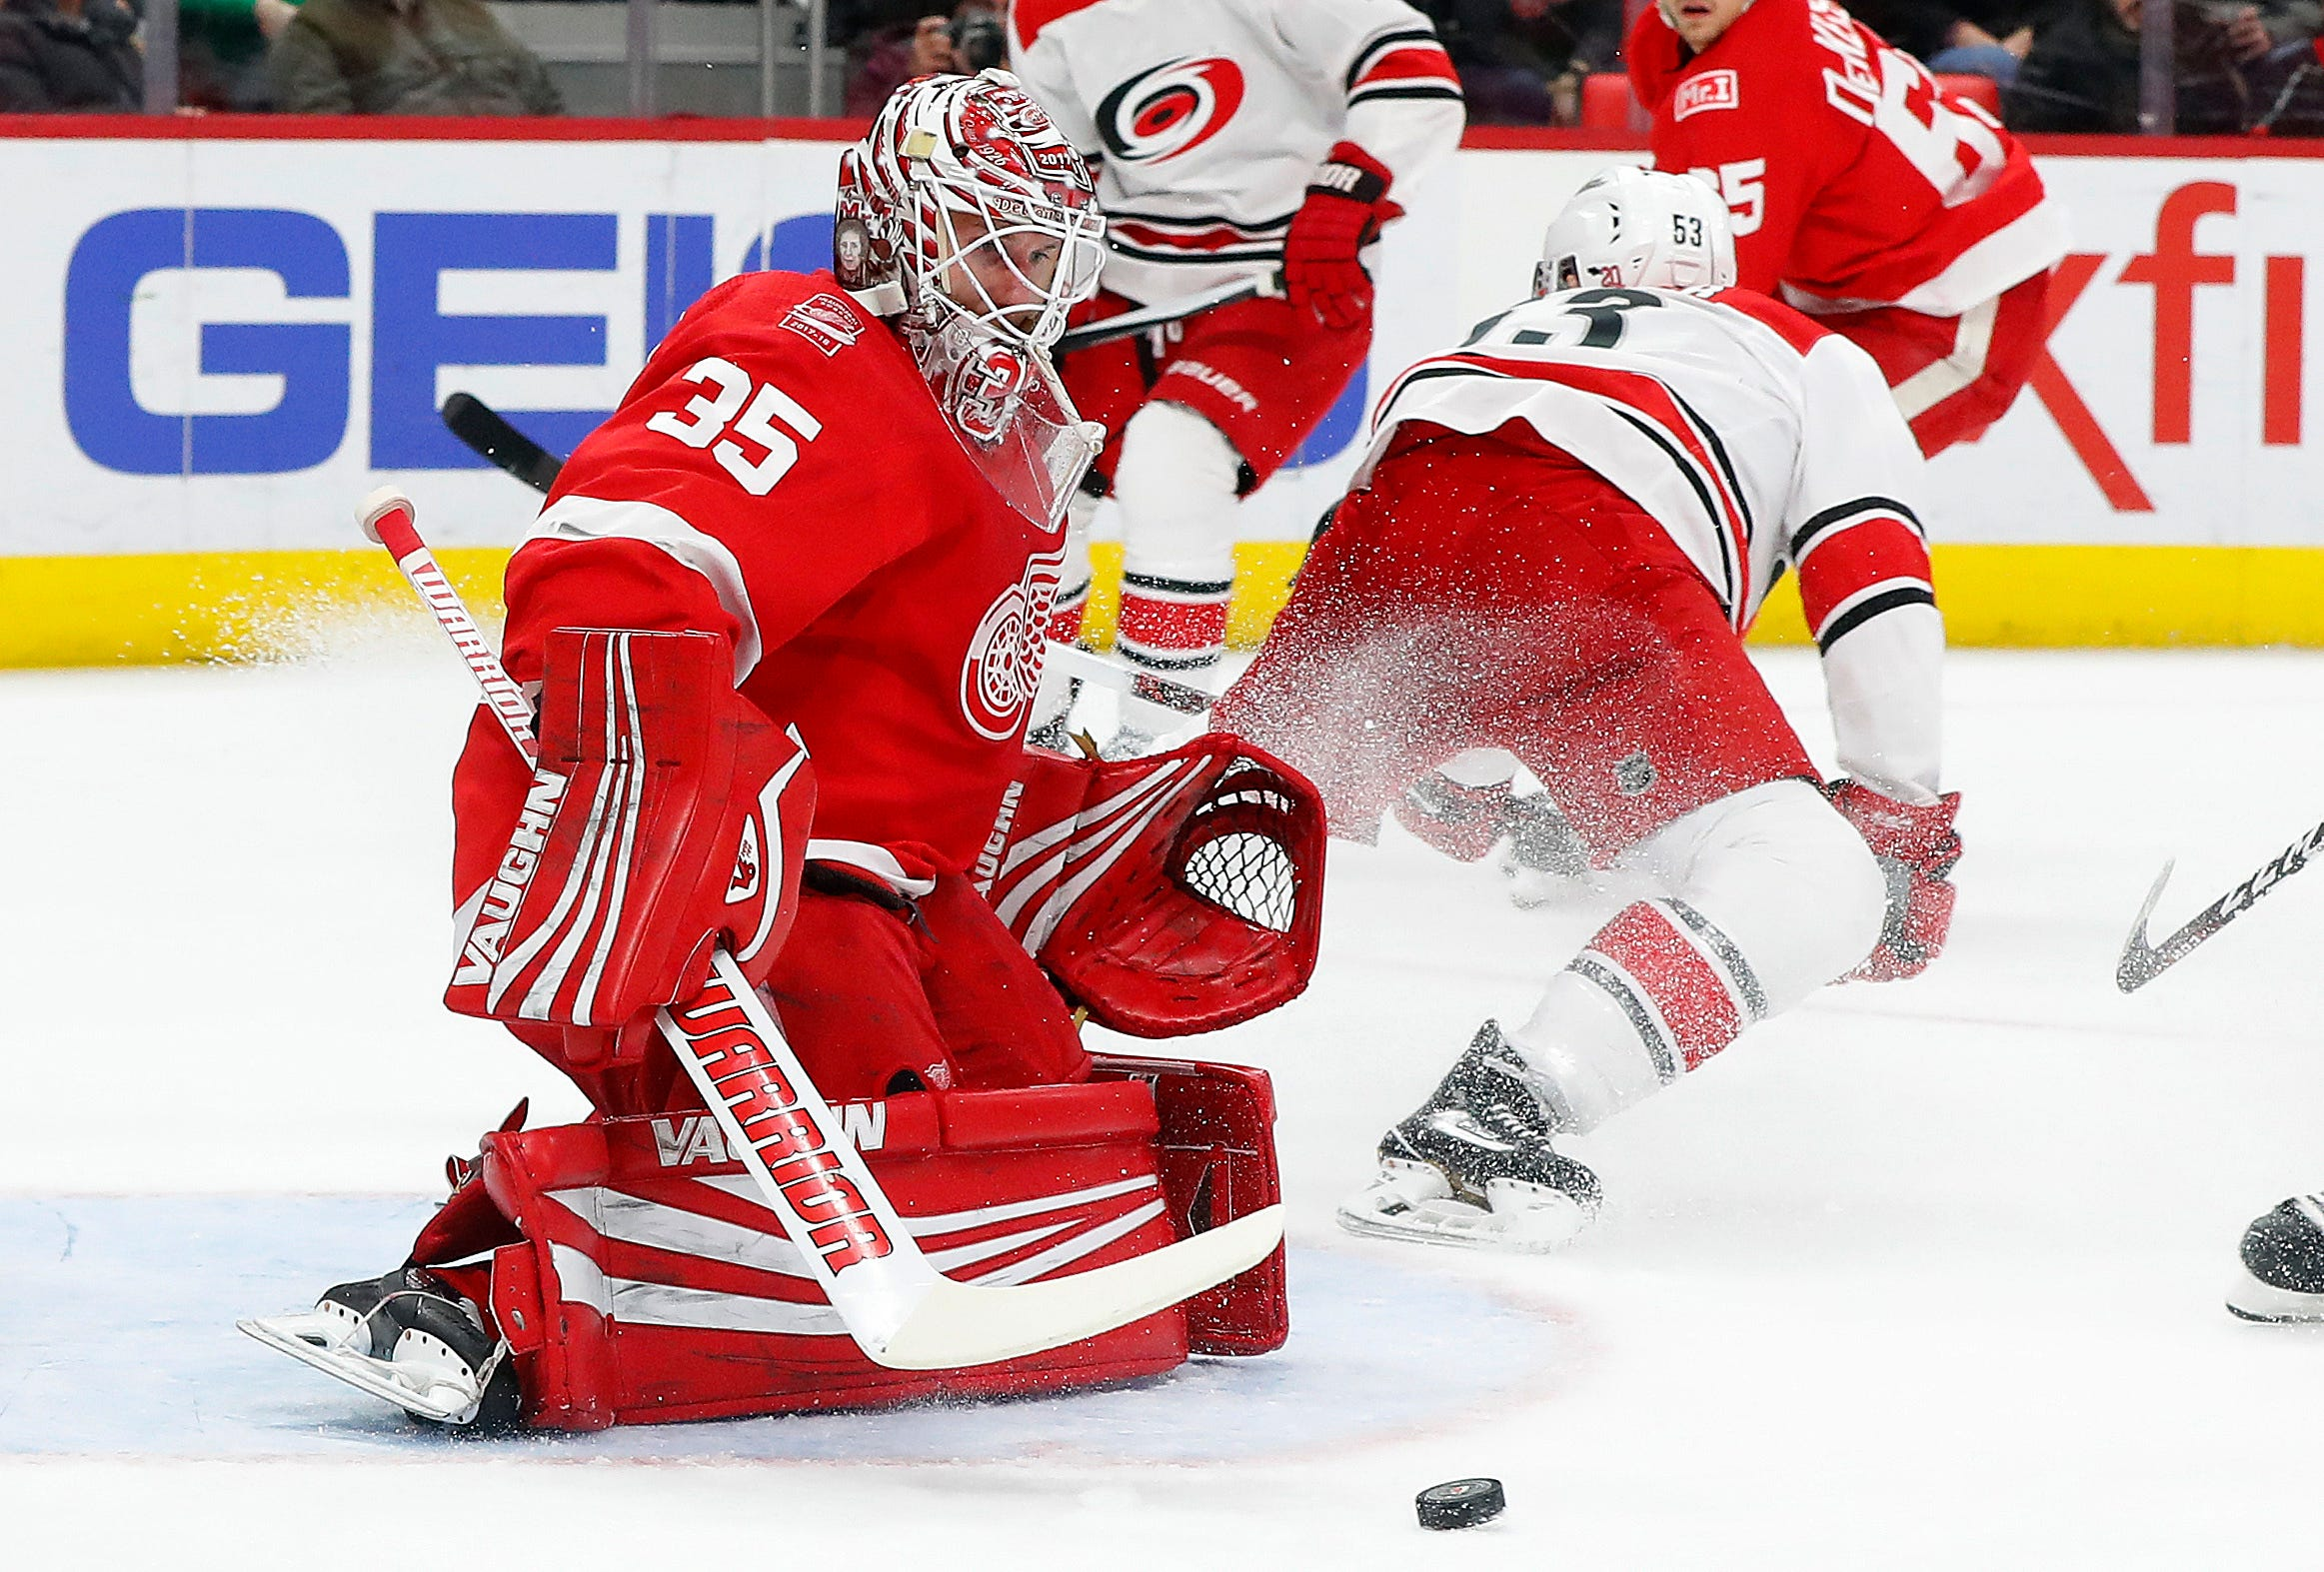 Lindholm scores 2 goals, Hurricanes beat Red Wings 3-1